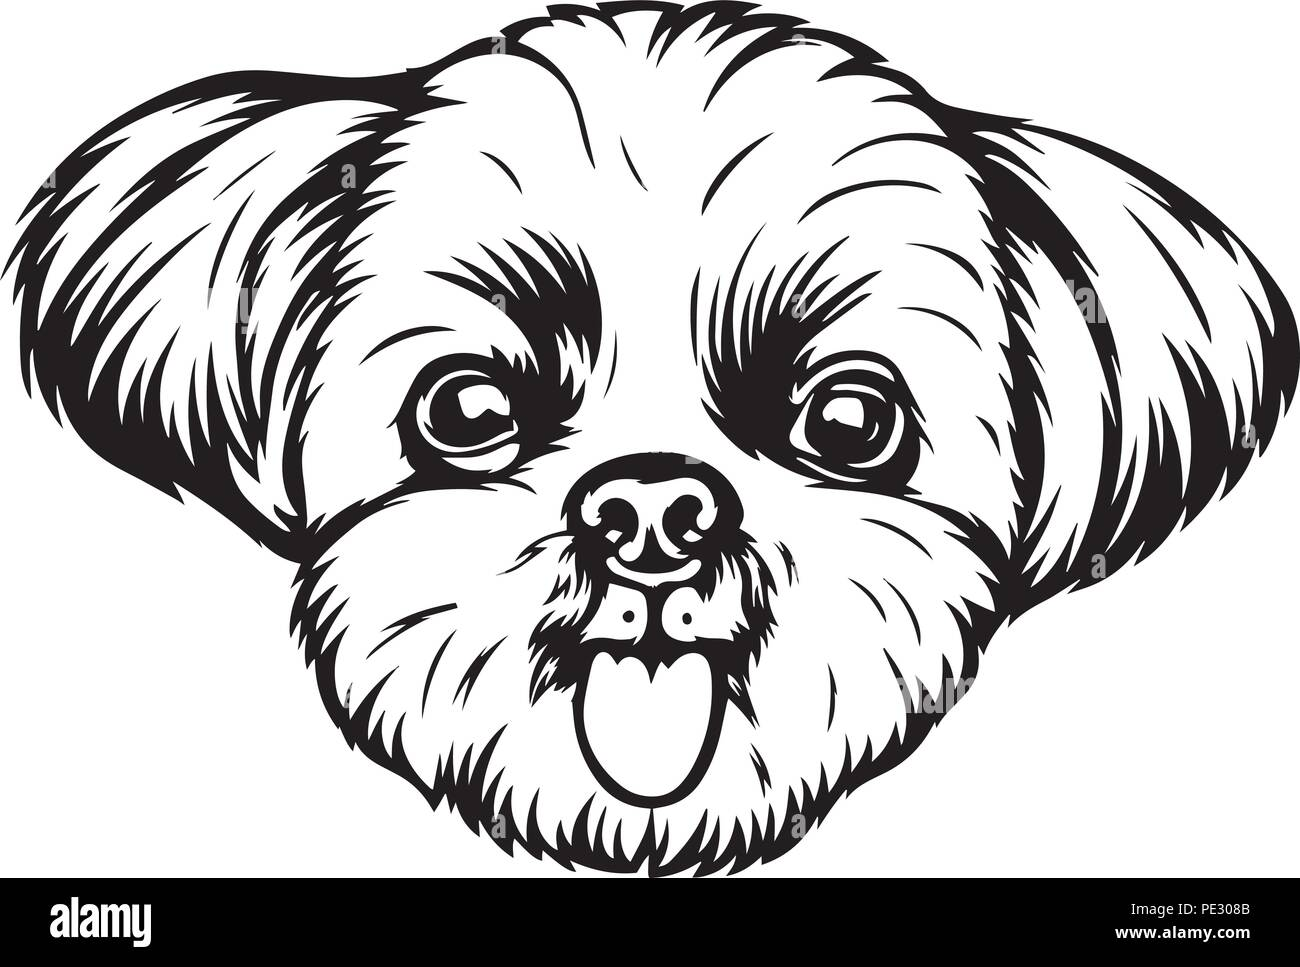 Shih Tzu Dog Breed Pet Puppy Isolated Head Face Stock Vector Image